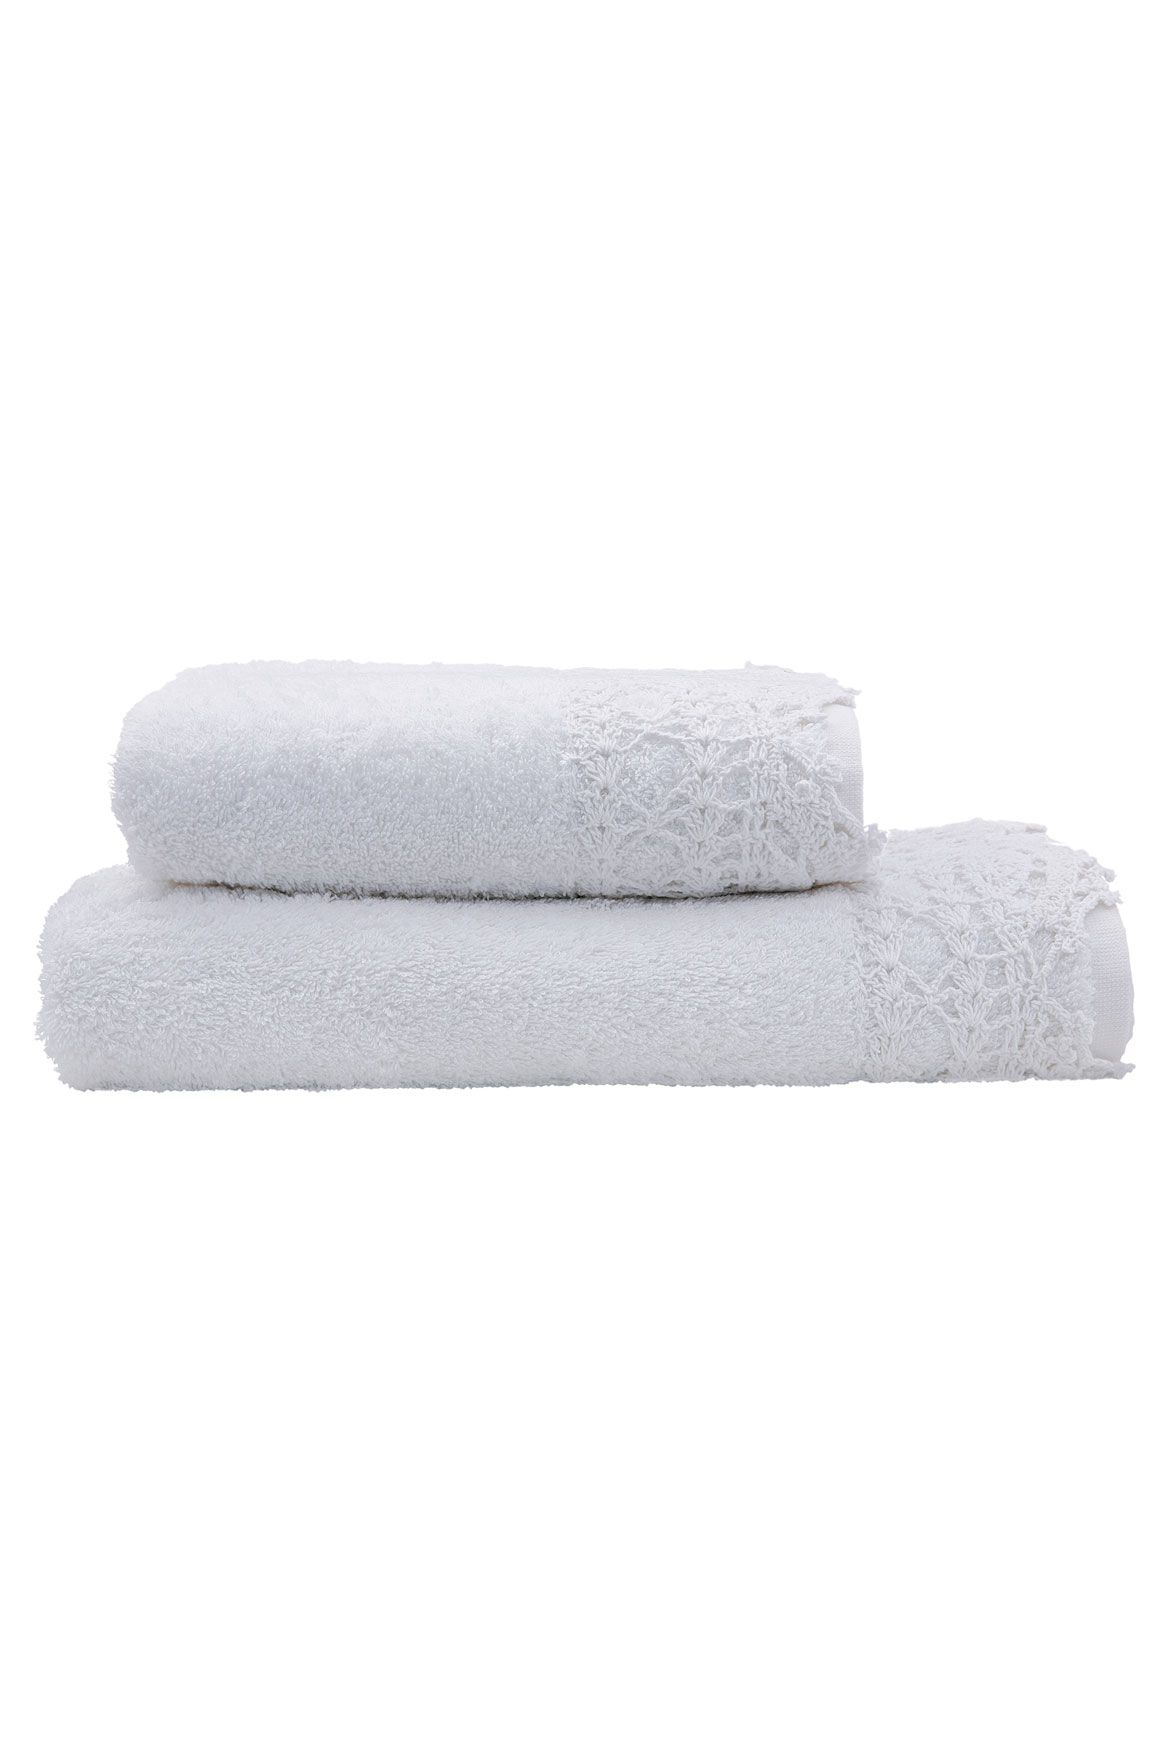 Mariel towels in white